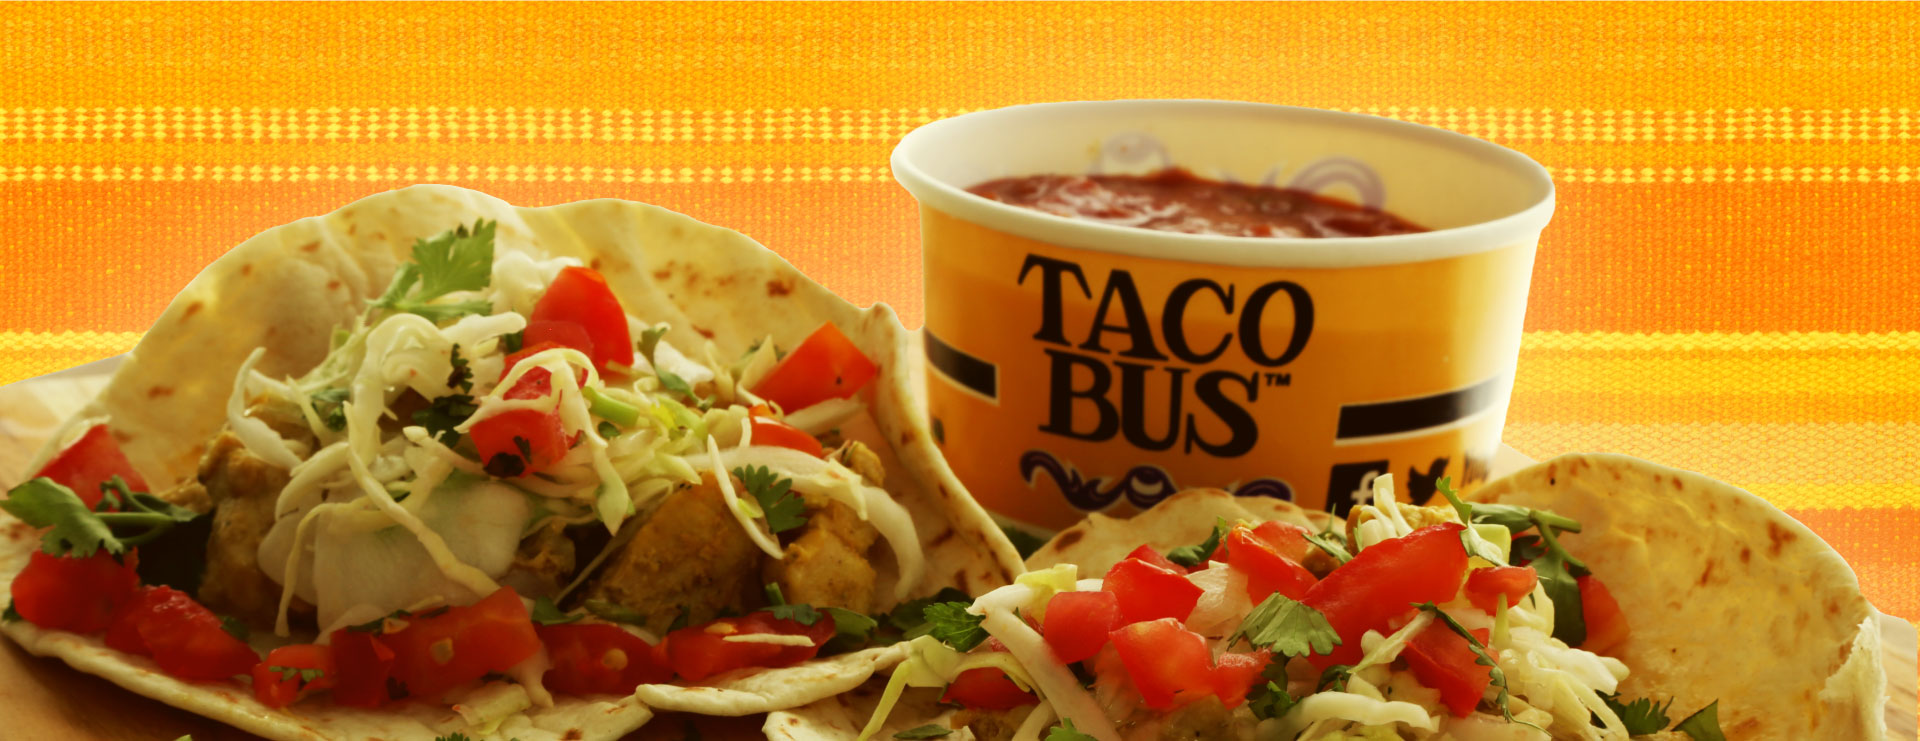 Taco Bus Tacos and Salsa